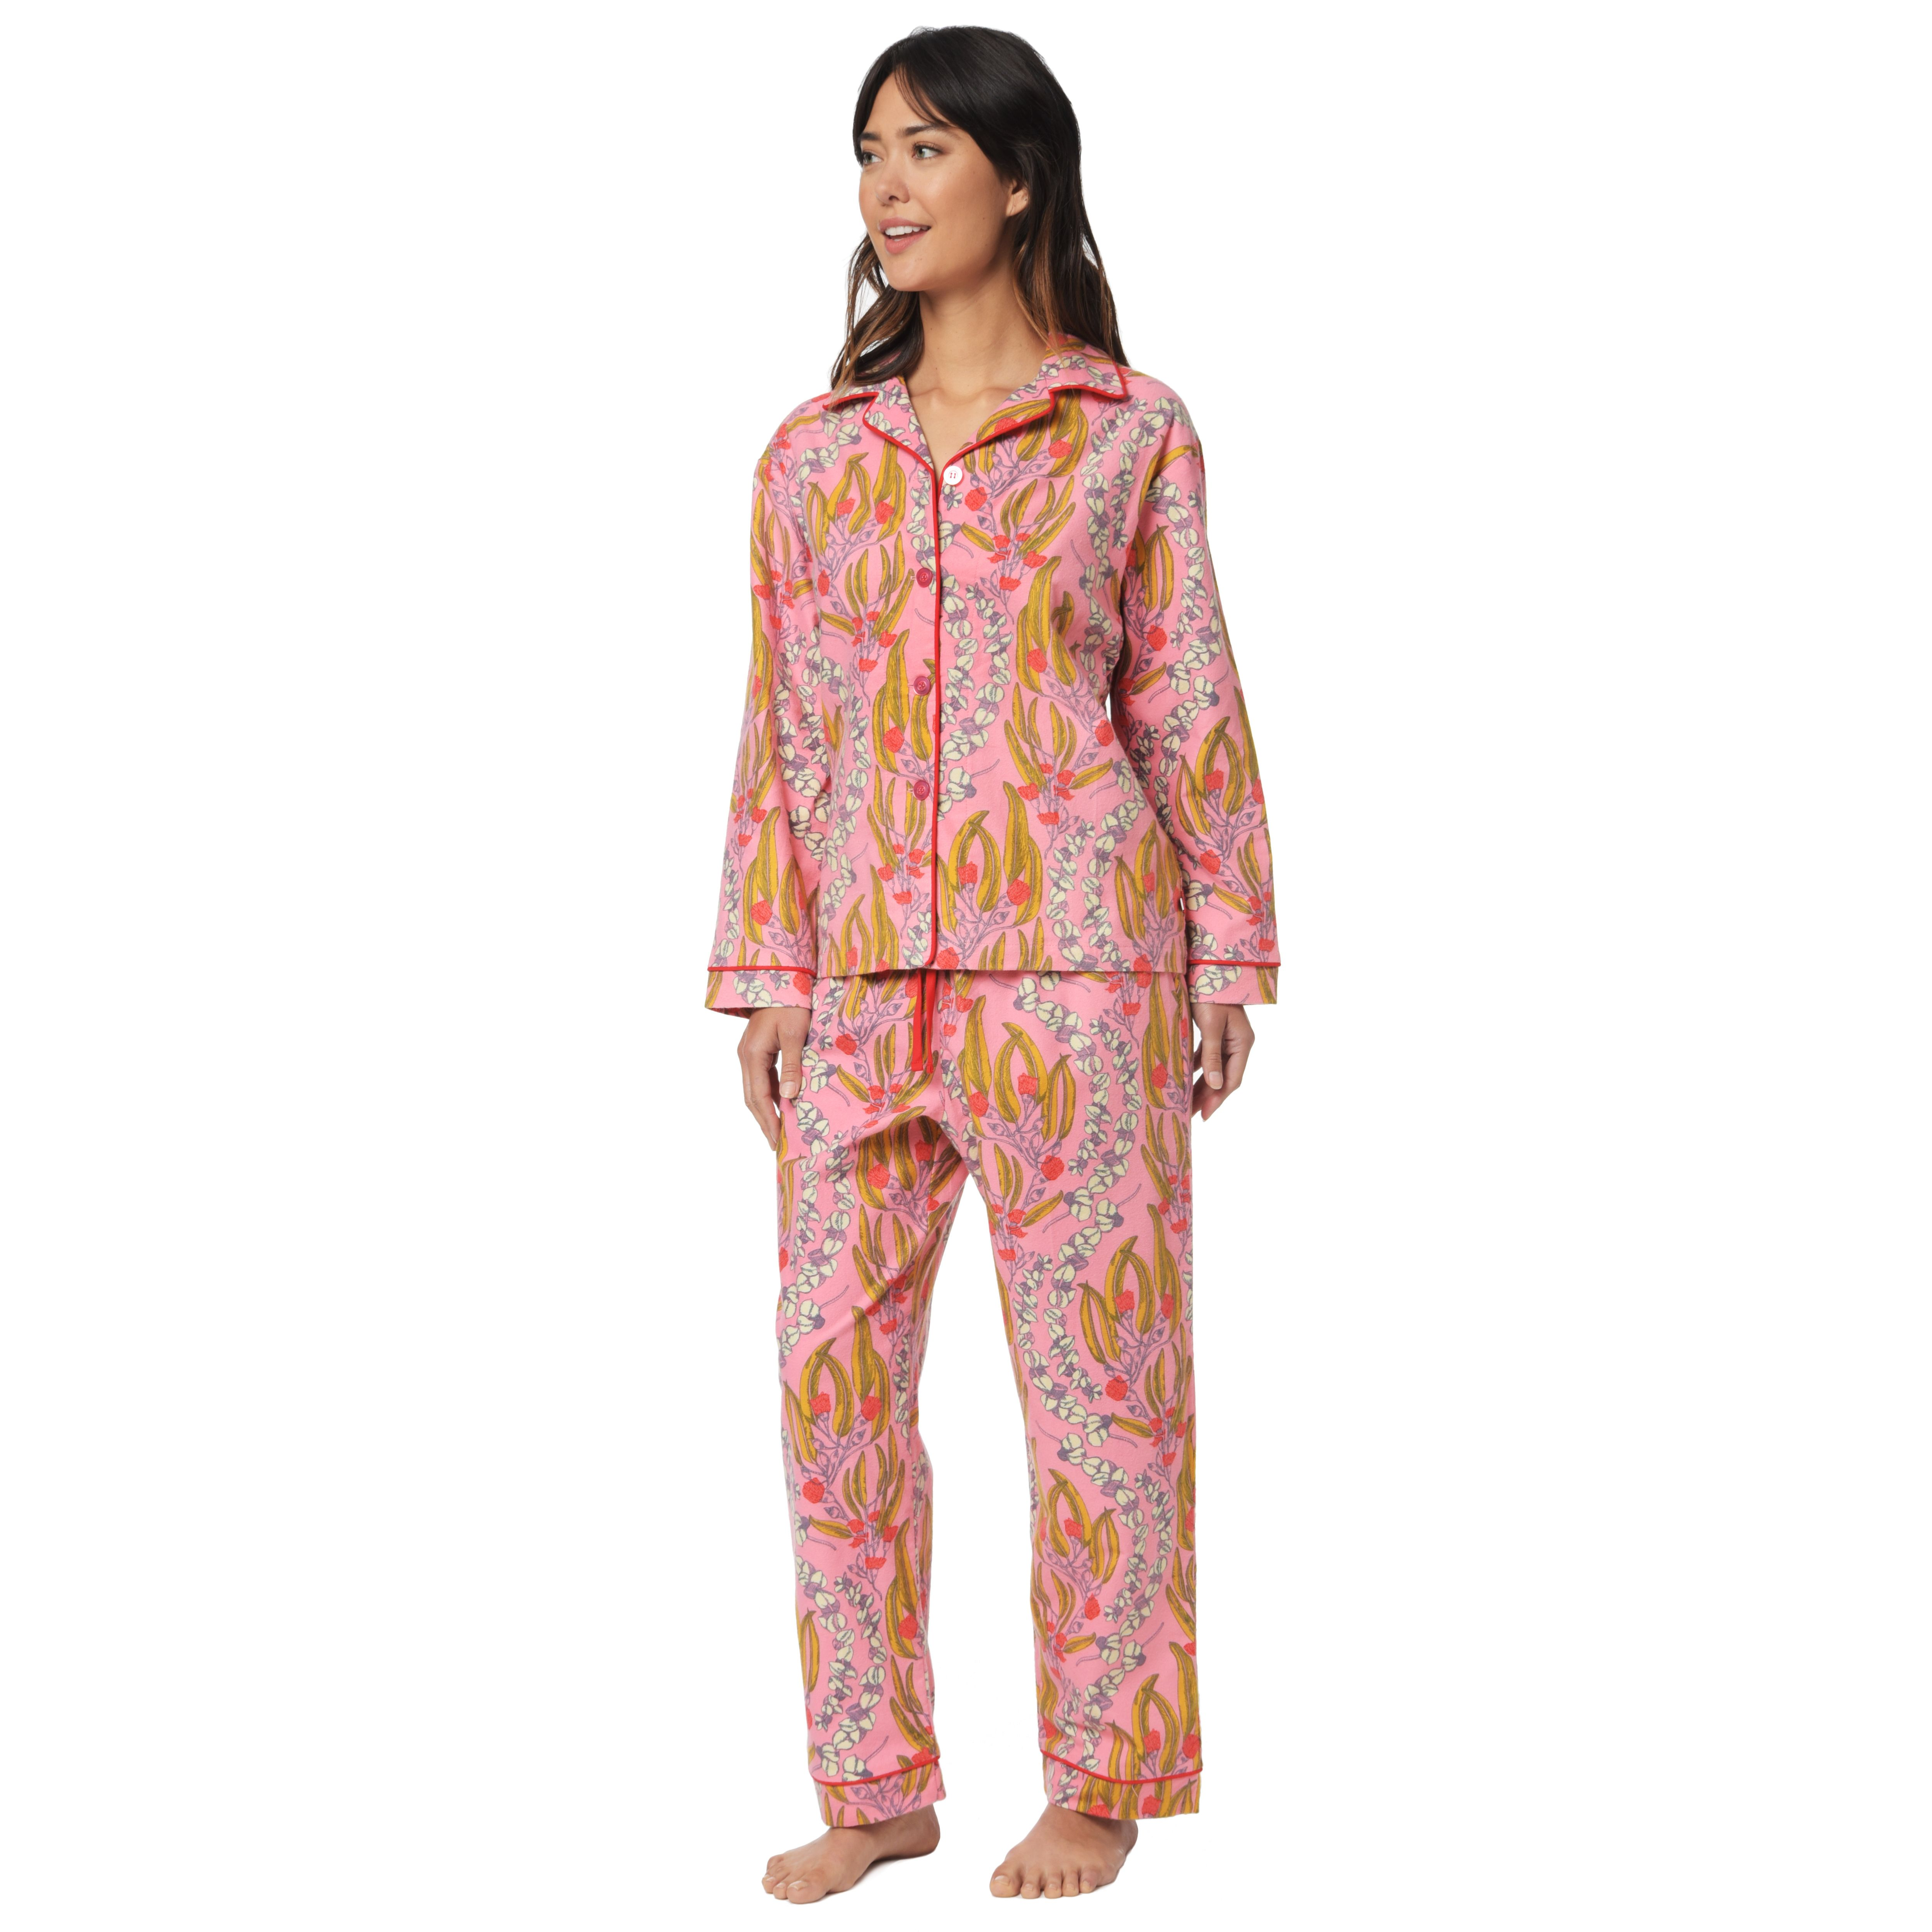 Floral flannel pajamas from The Cat's Pajamas. www.thecatspjs.com ...